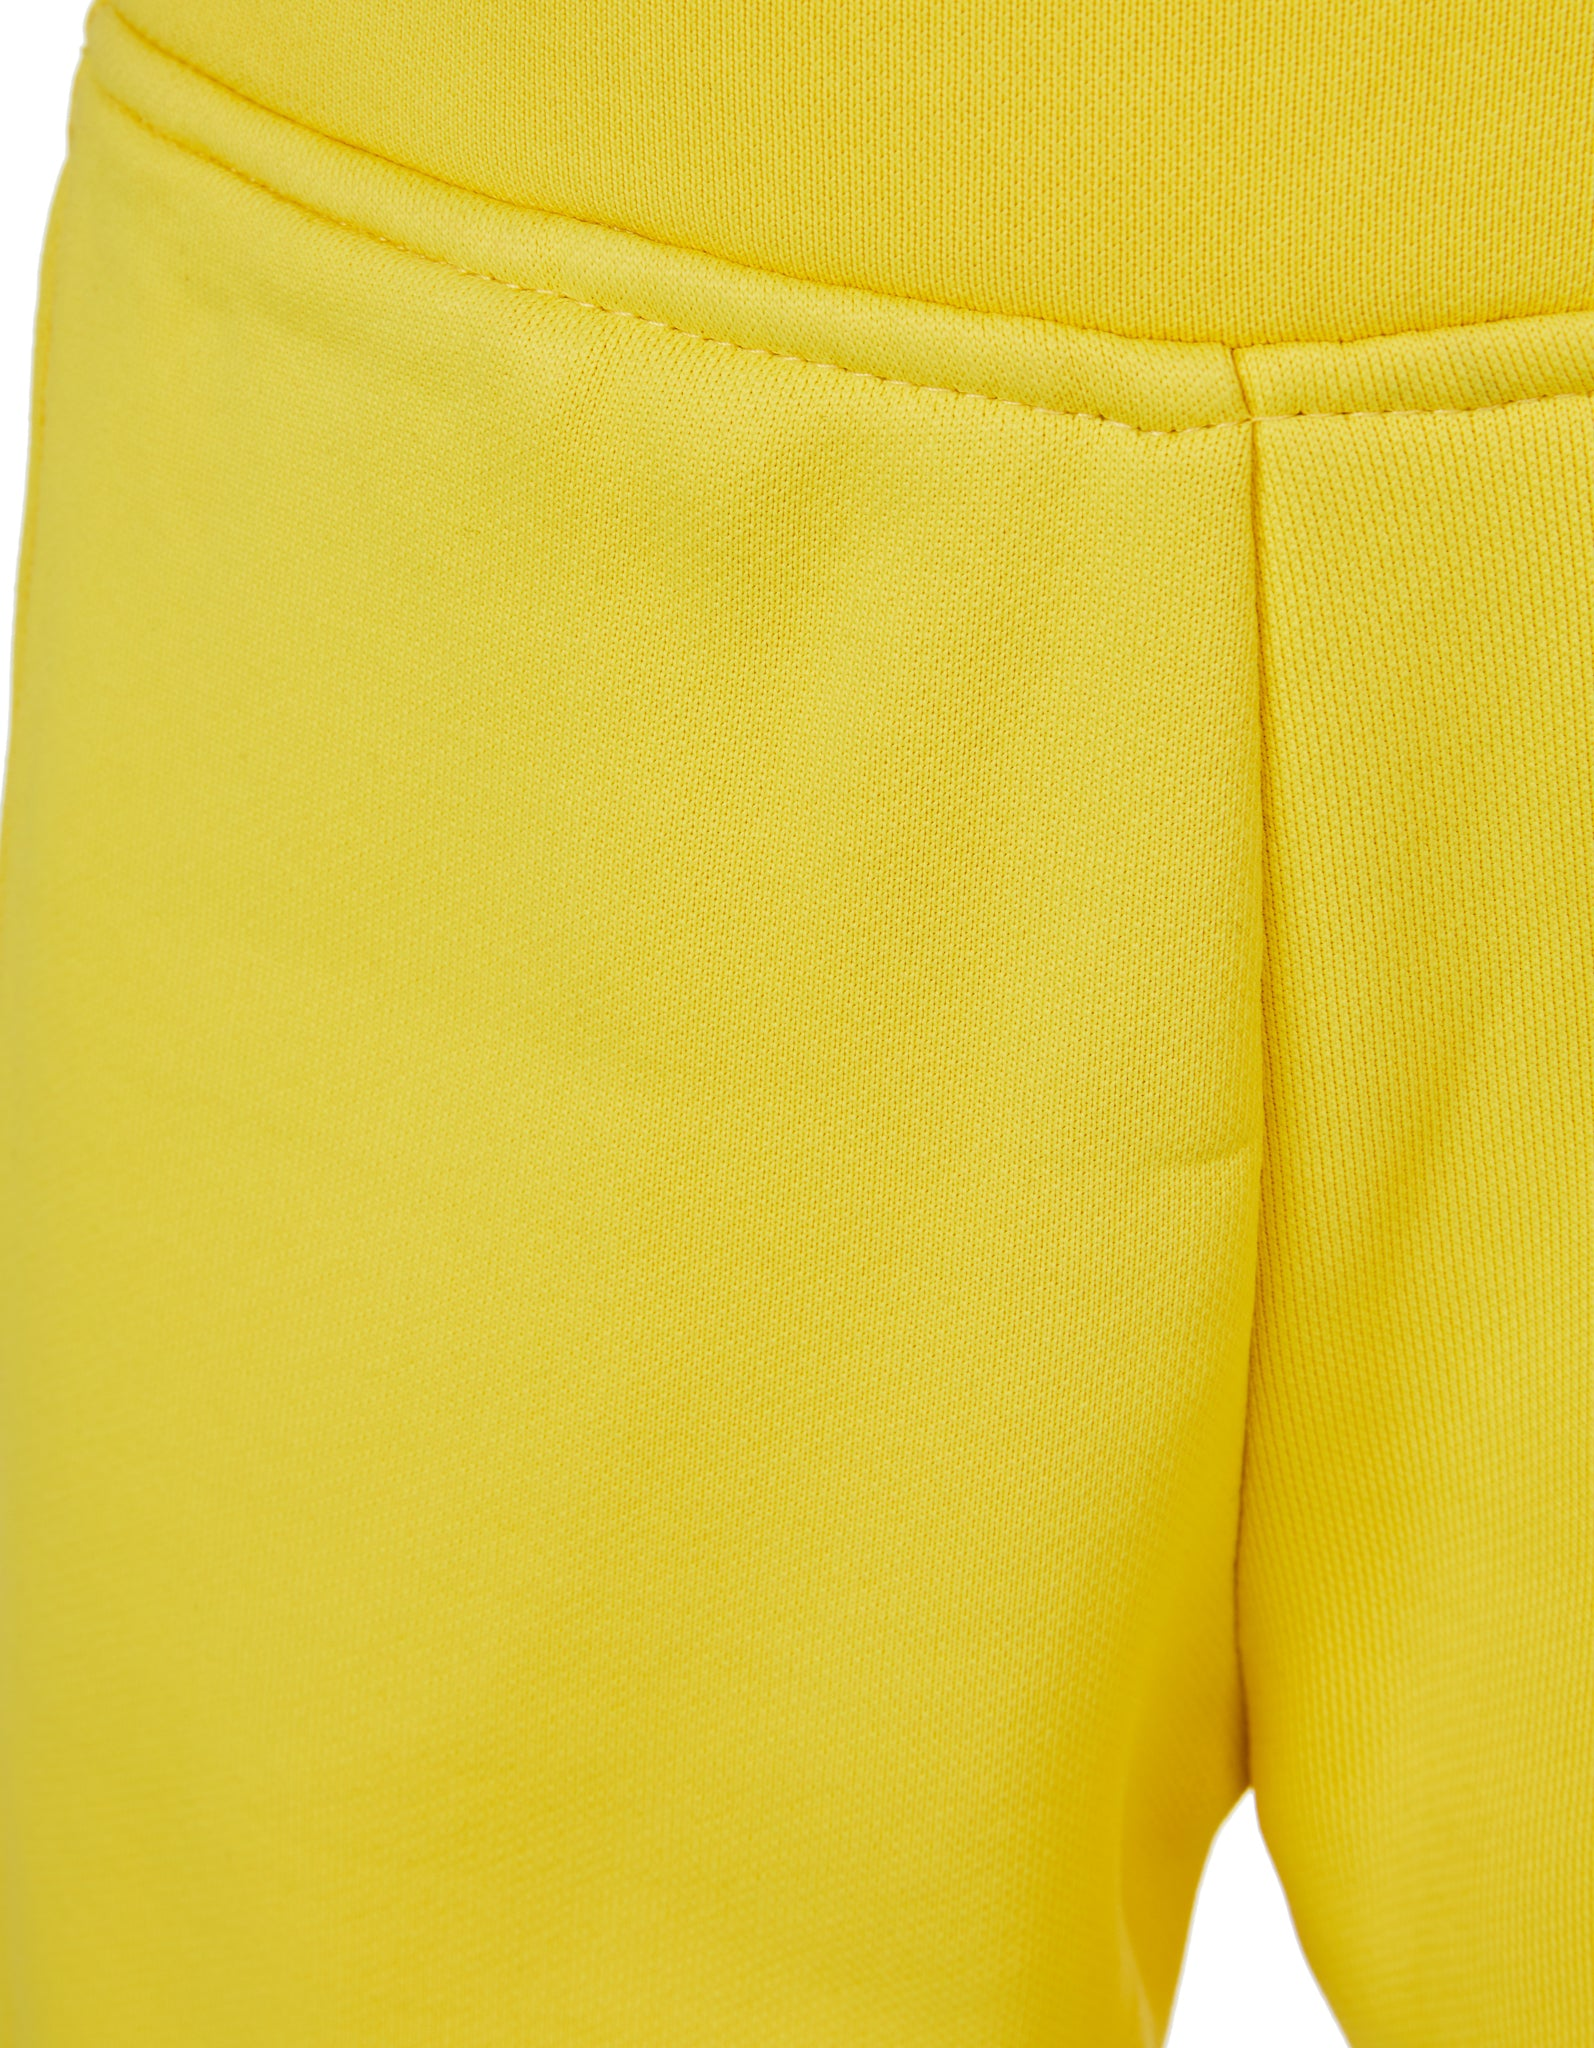 M'A KIDS ELASTIC CUFF TROUSERS IN YELLOW